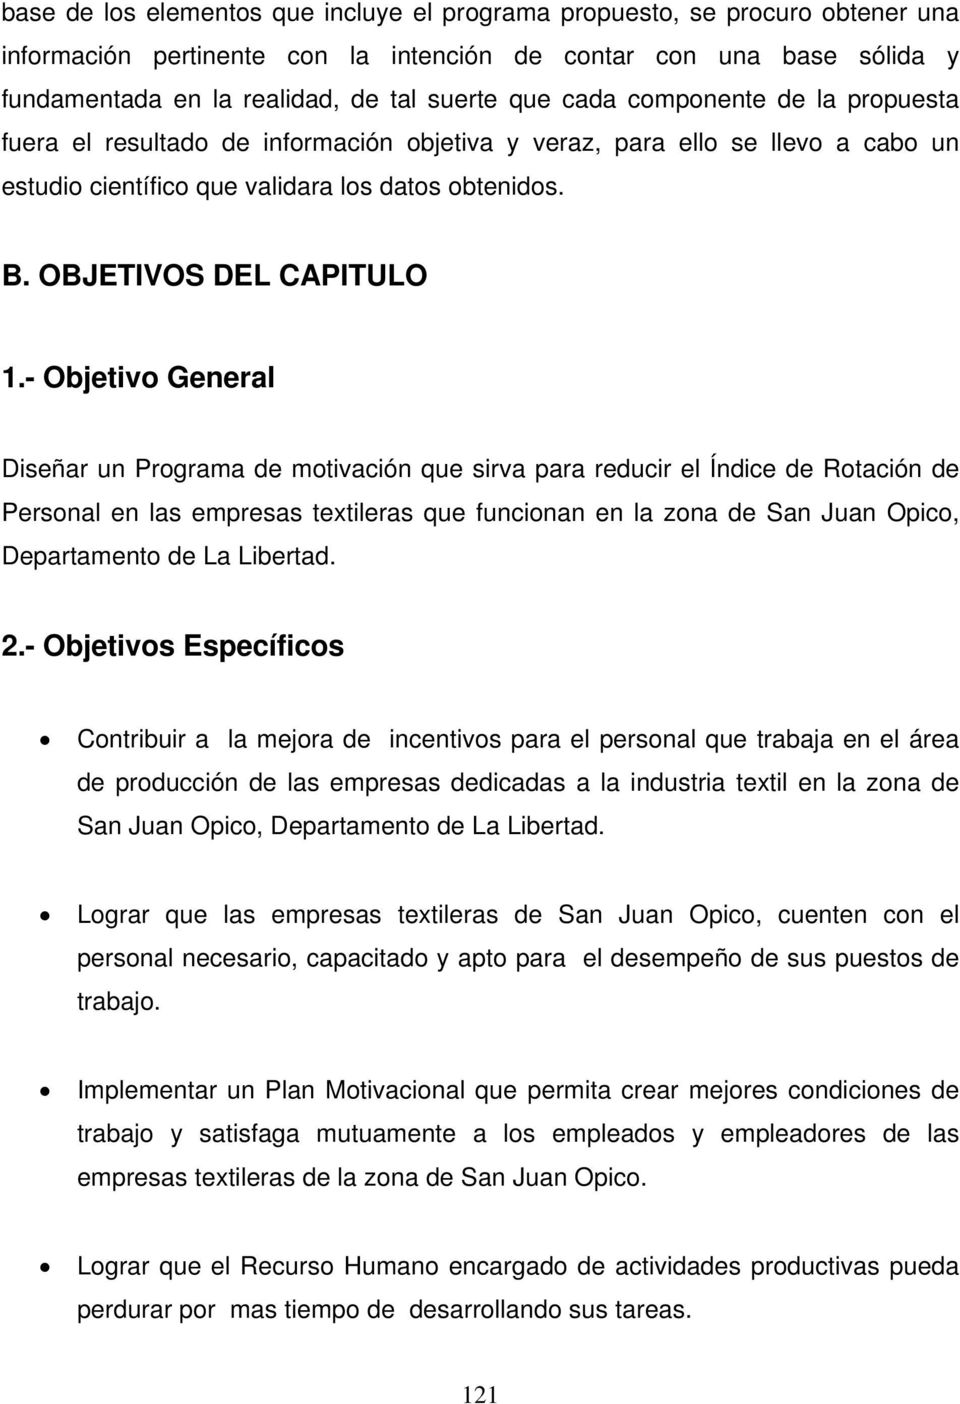 Capitulo Iv A Generalidades Pdf Free Download